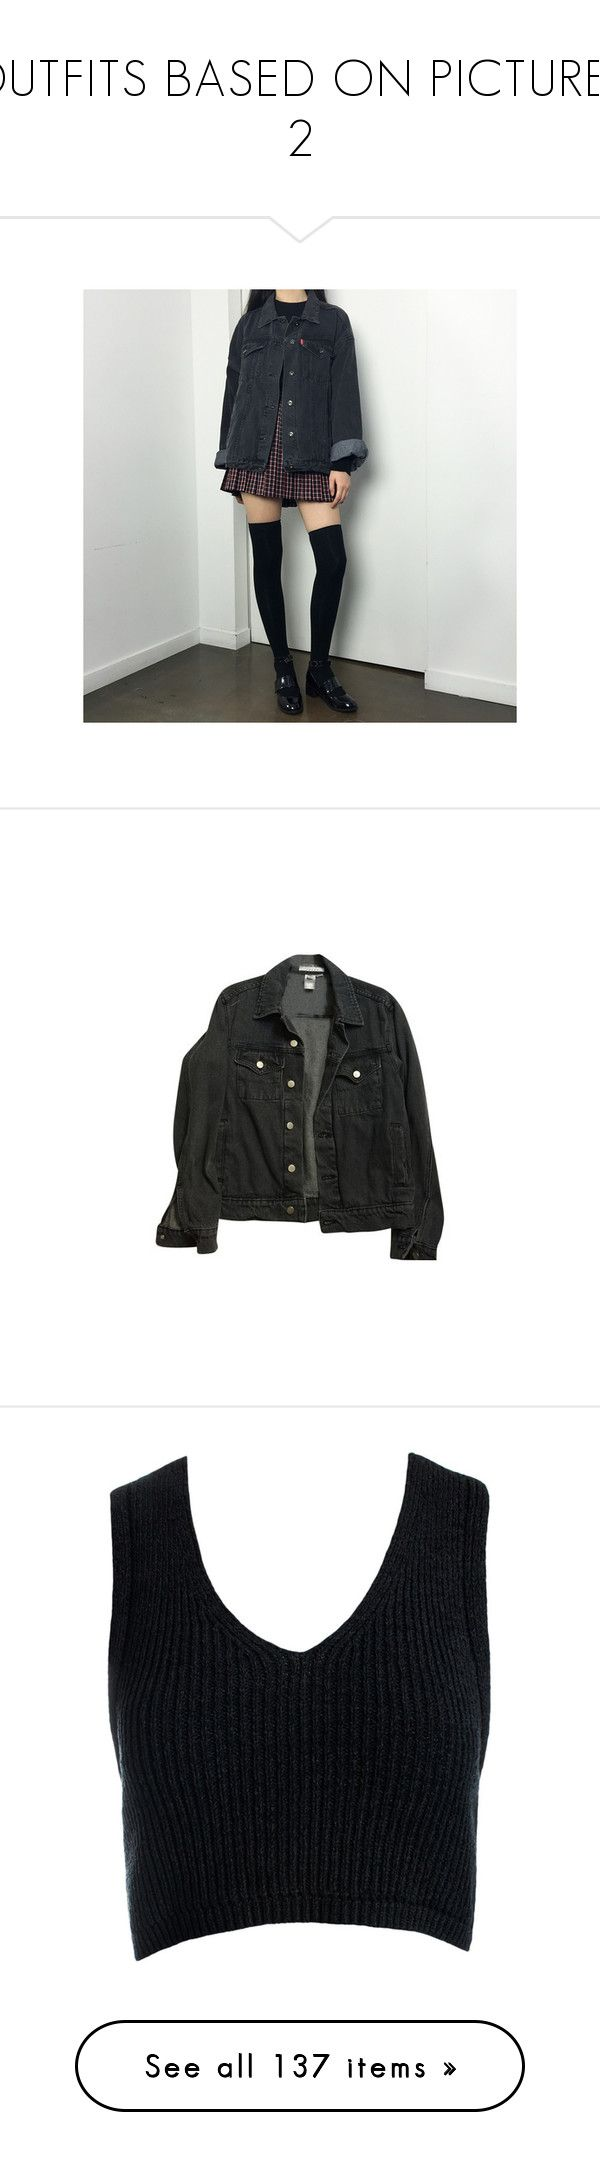 """""""OUTFITS BASED ON PICTURES 2"""" by thundxrstorms ❤ liked on Polyvore featuring outerwear, jackets, tops, coats & jackets, unisex jackets, american apparel jacket, denim jacket, american apparel, jean jacket and crop tops"""